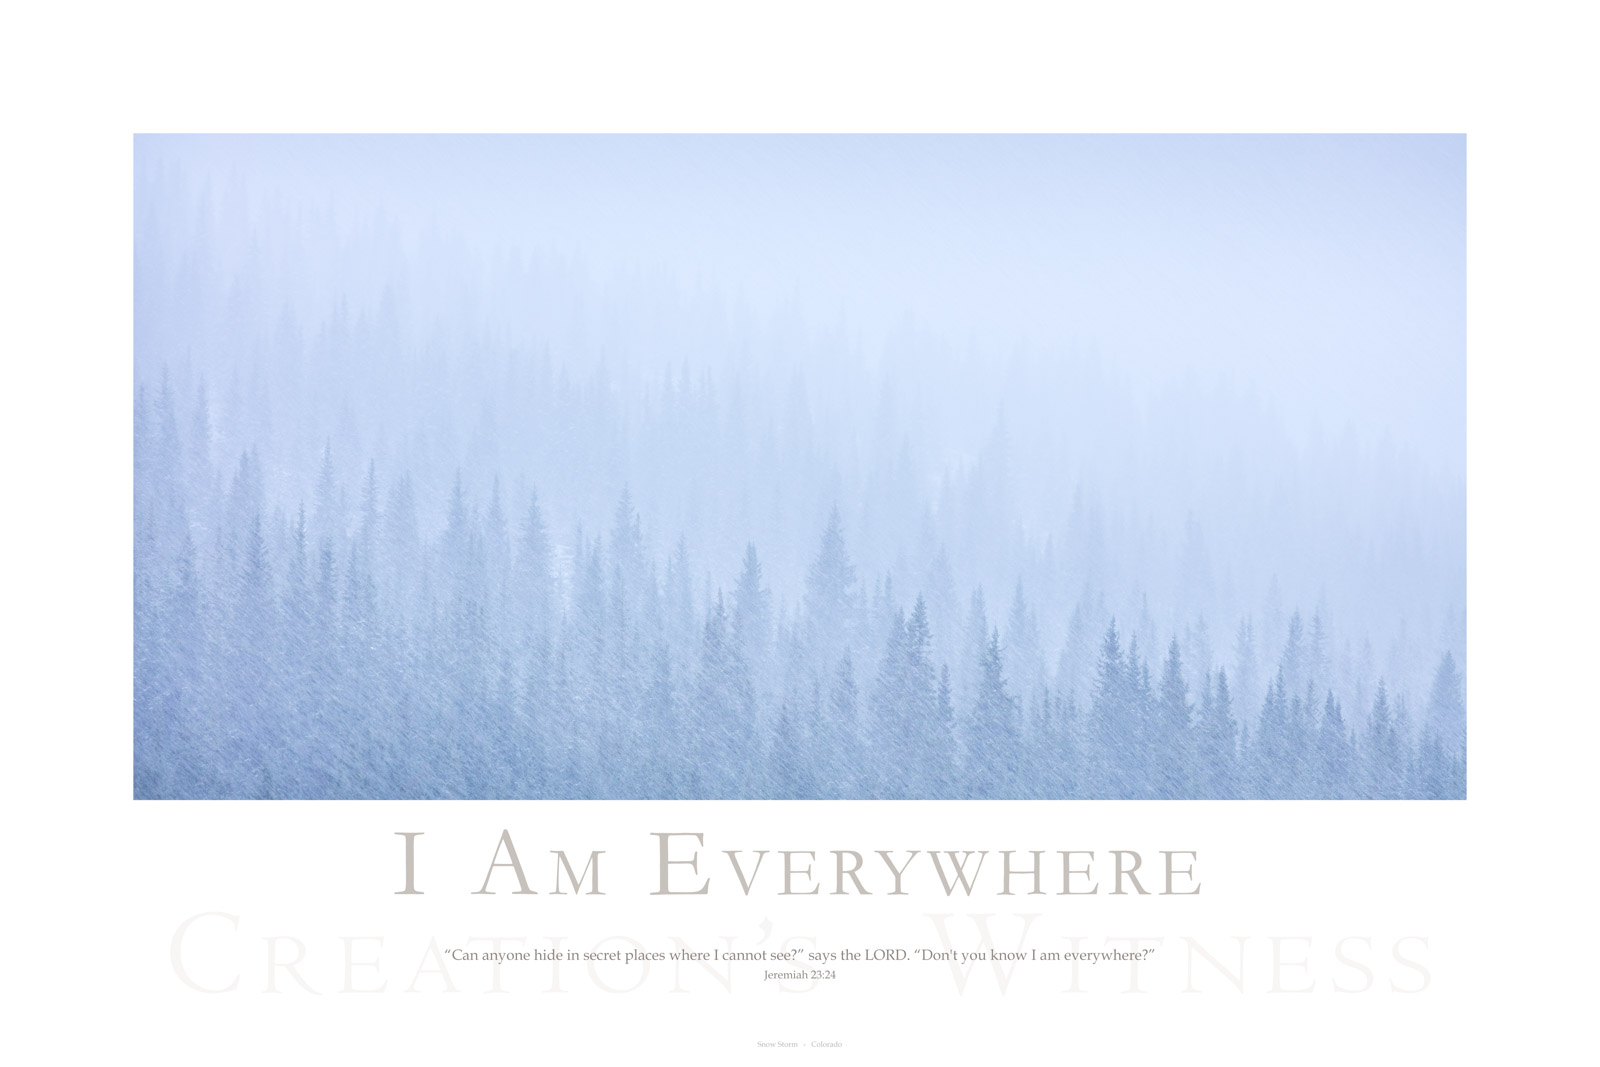 """""""Can anyone hide in secret places where I cannot see?"""" says the LORD. """"Don't you know I am everywhere?"""" Jeremiah 23:24"""